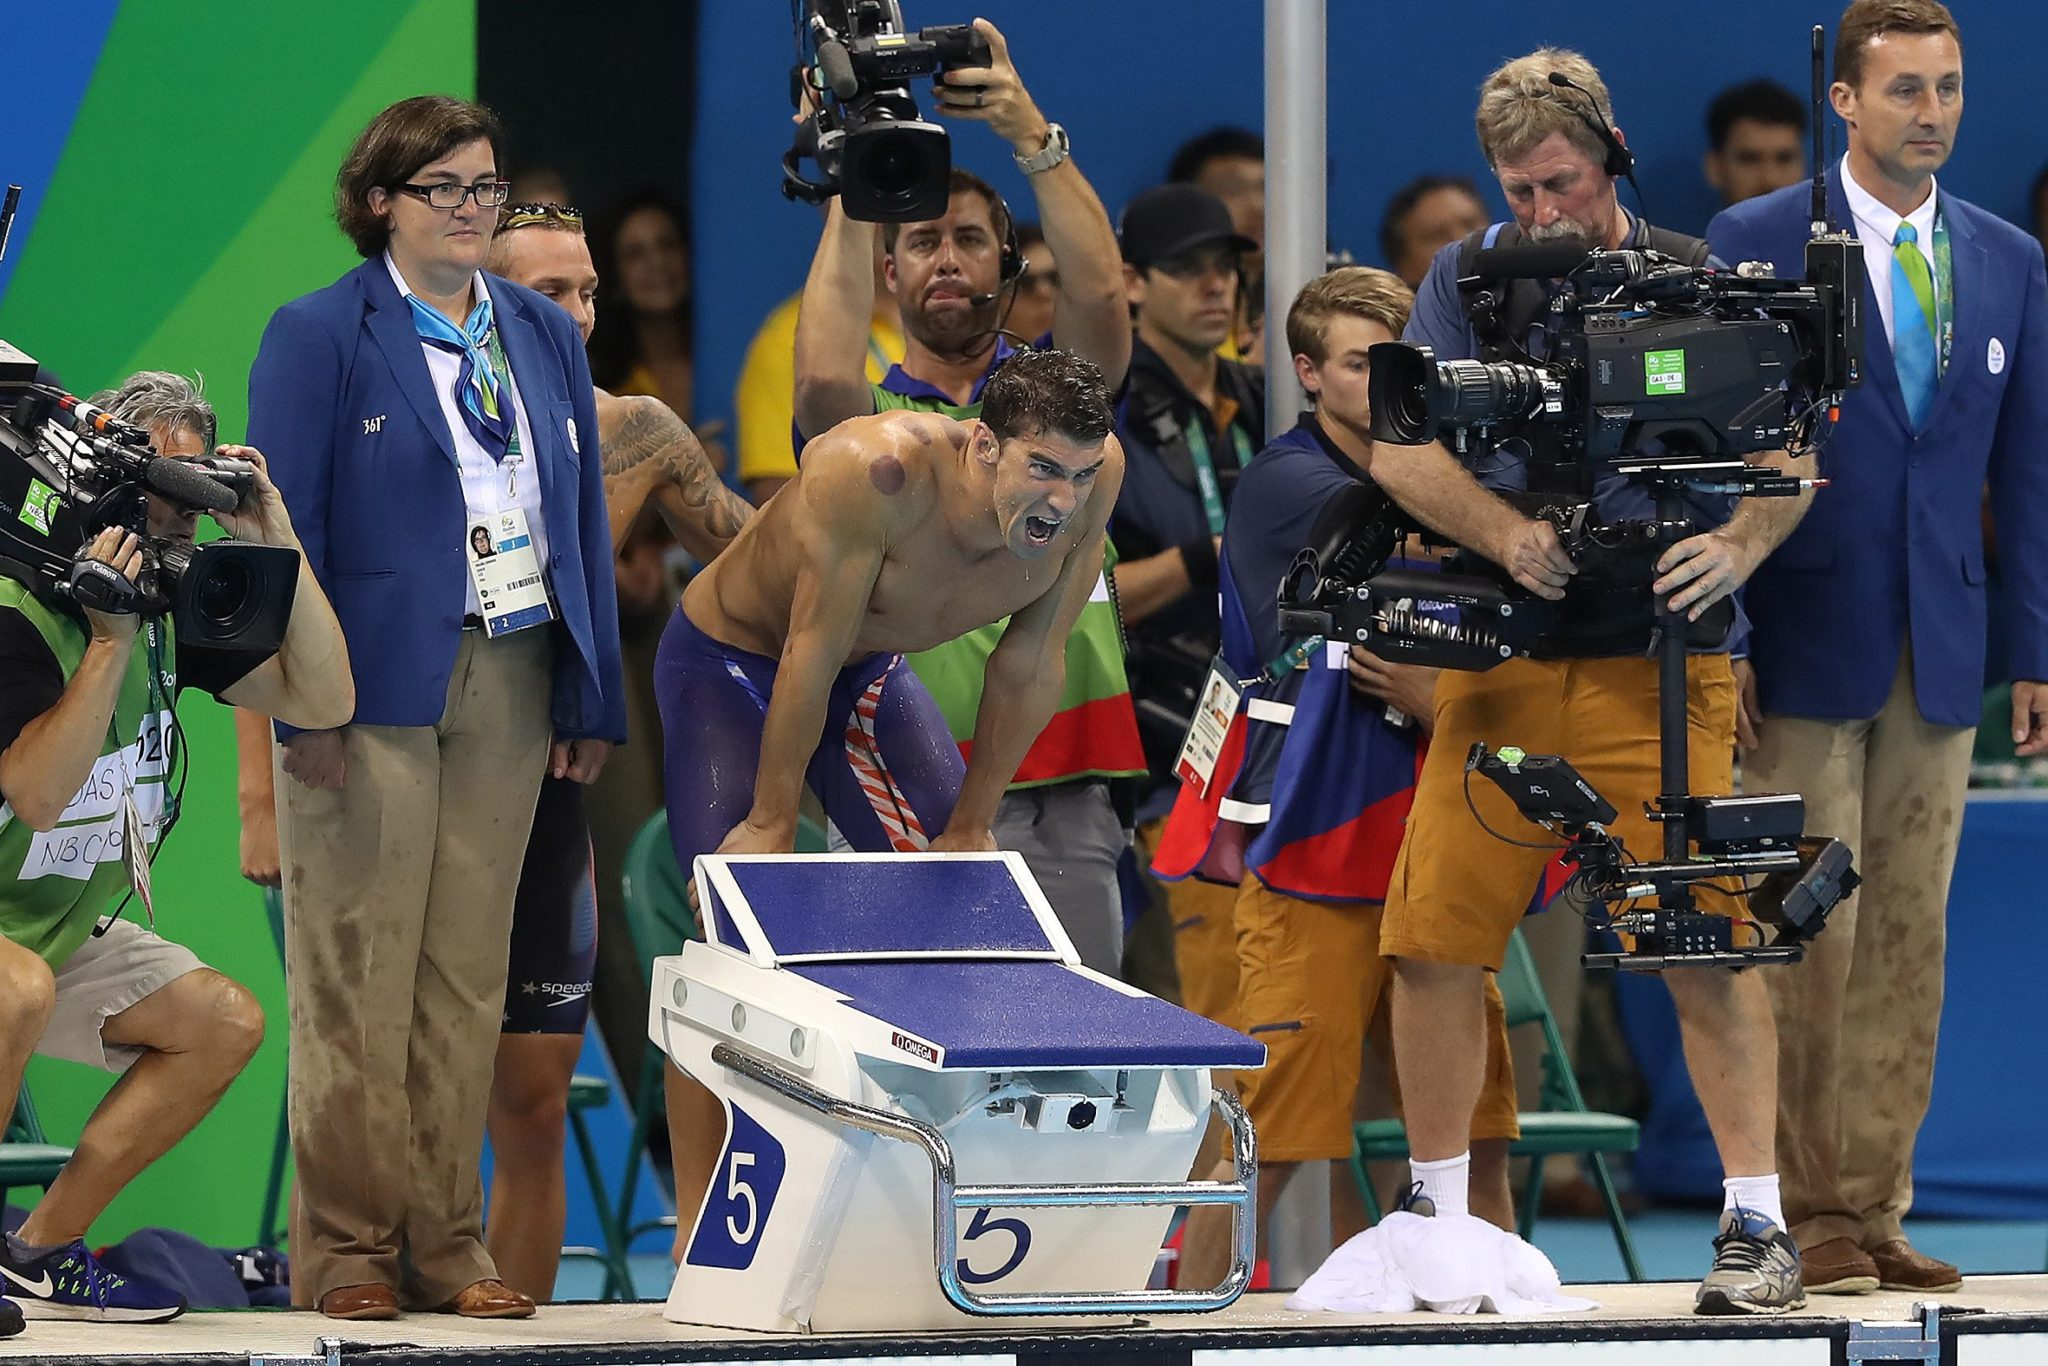 Swimming at the 2016 Summer Olympics – Men's 4 × 100 metre freestyle relay